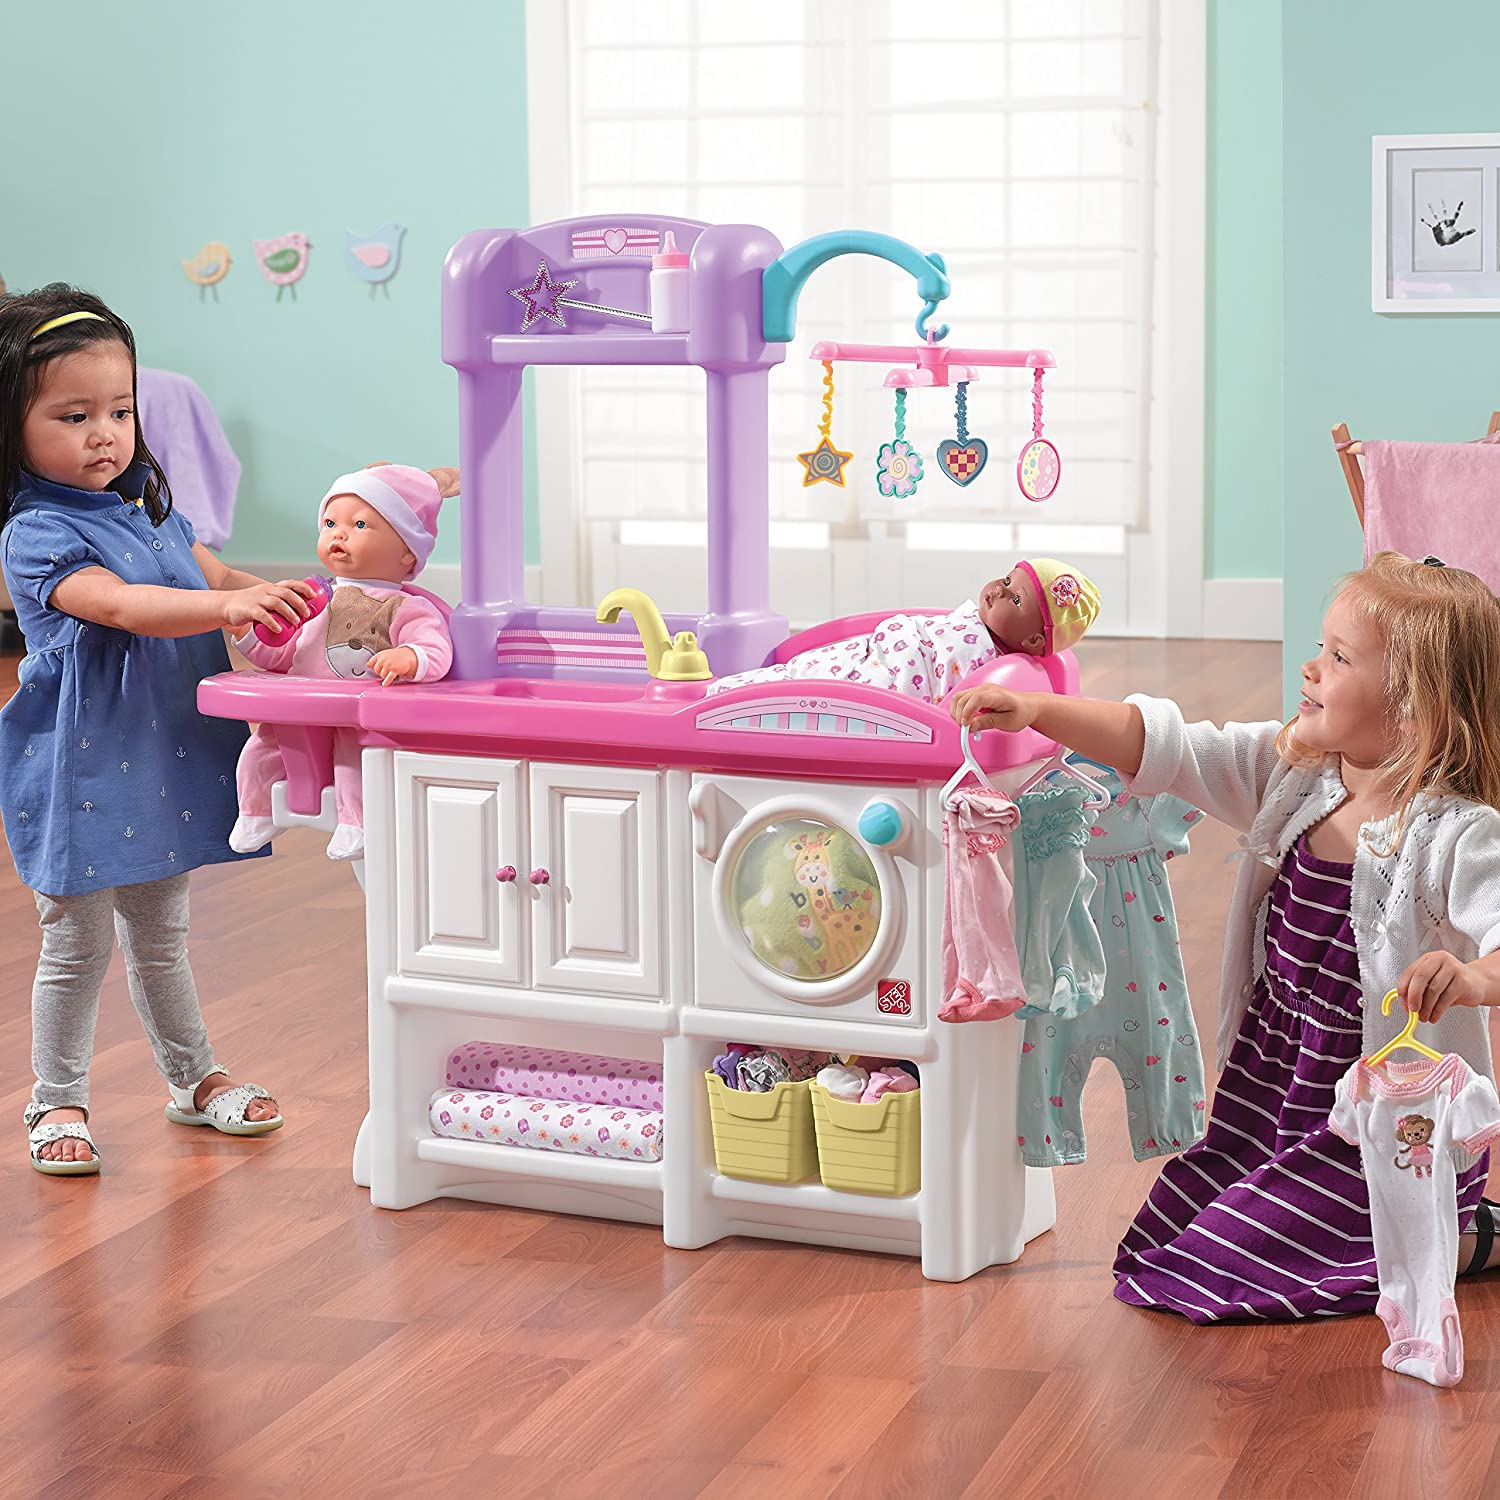 Baby Doll Furniture Playset Home Decor